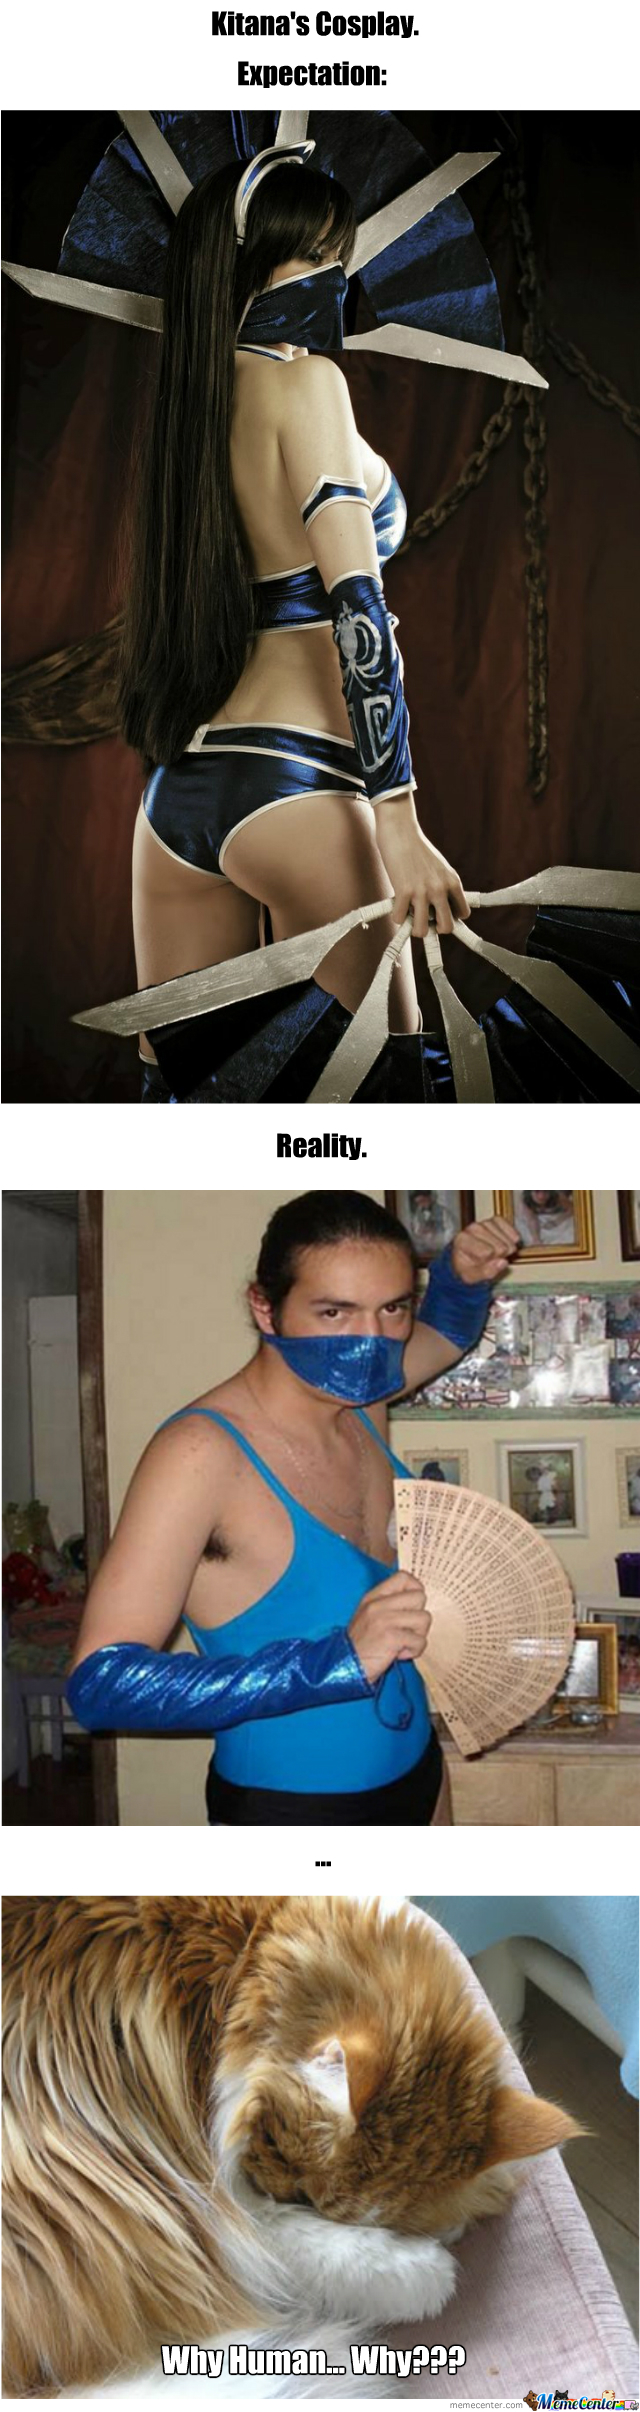 """Kitana Cosplay! From Awesome To """"zthat?"""""""